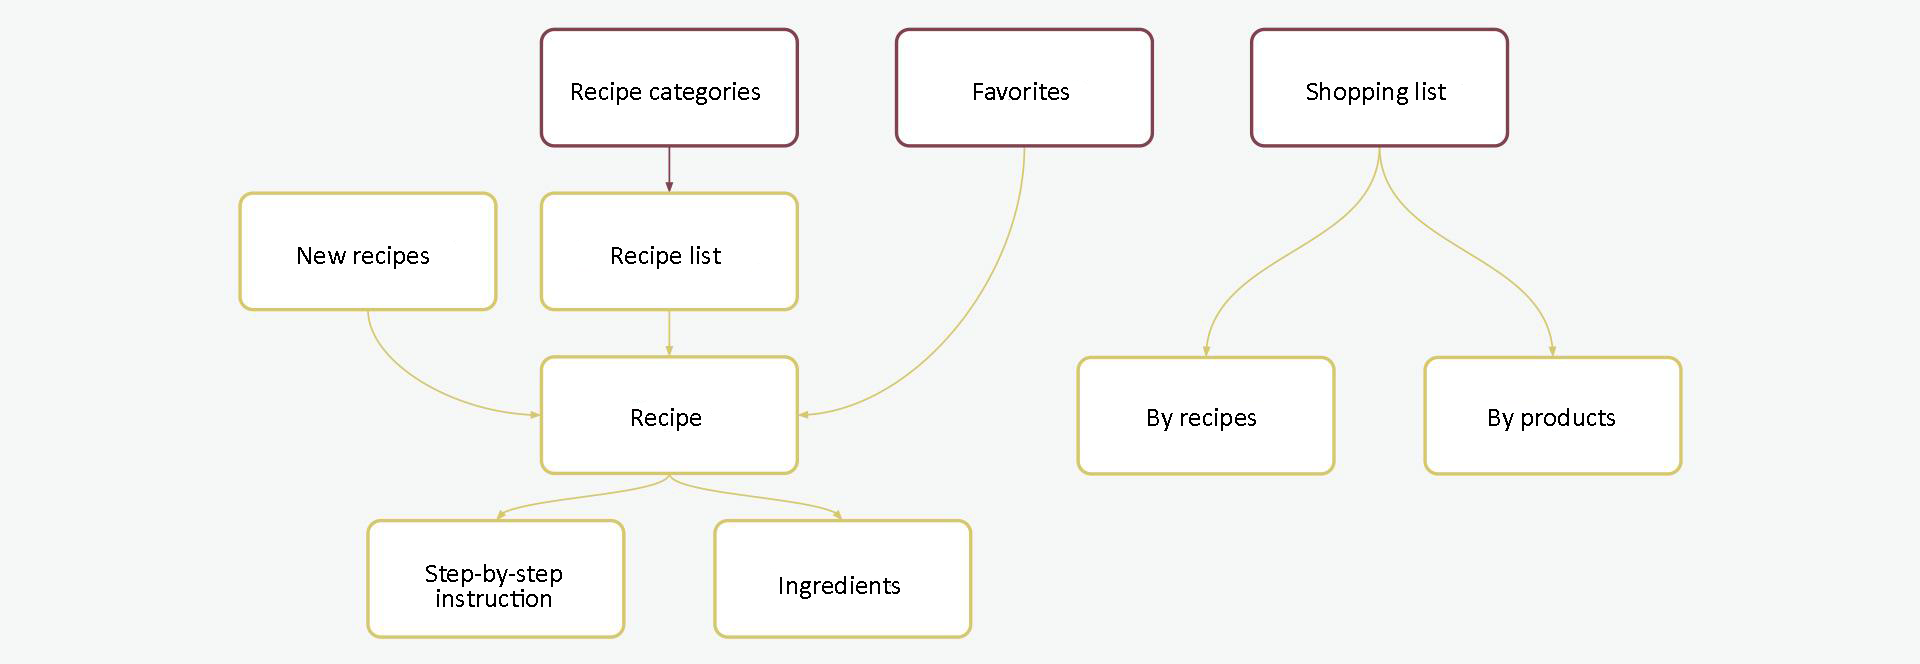 Structure of Cookorama cooking app